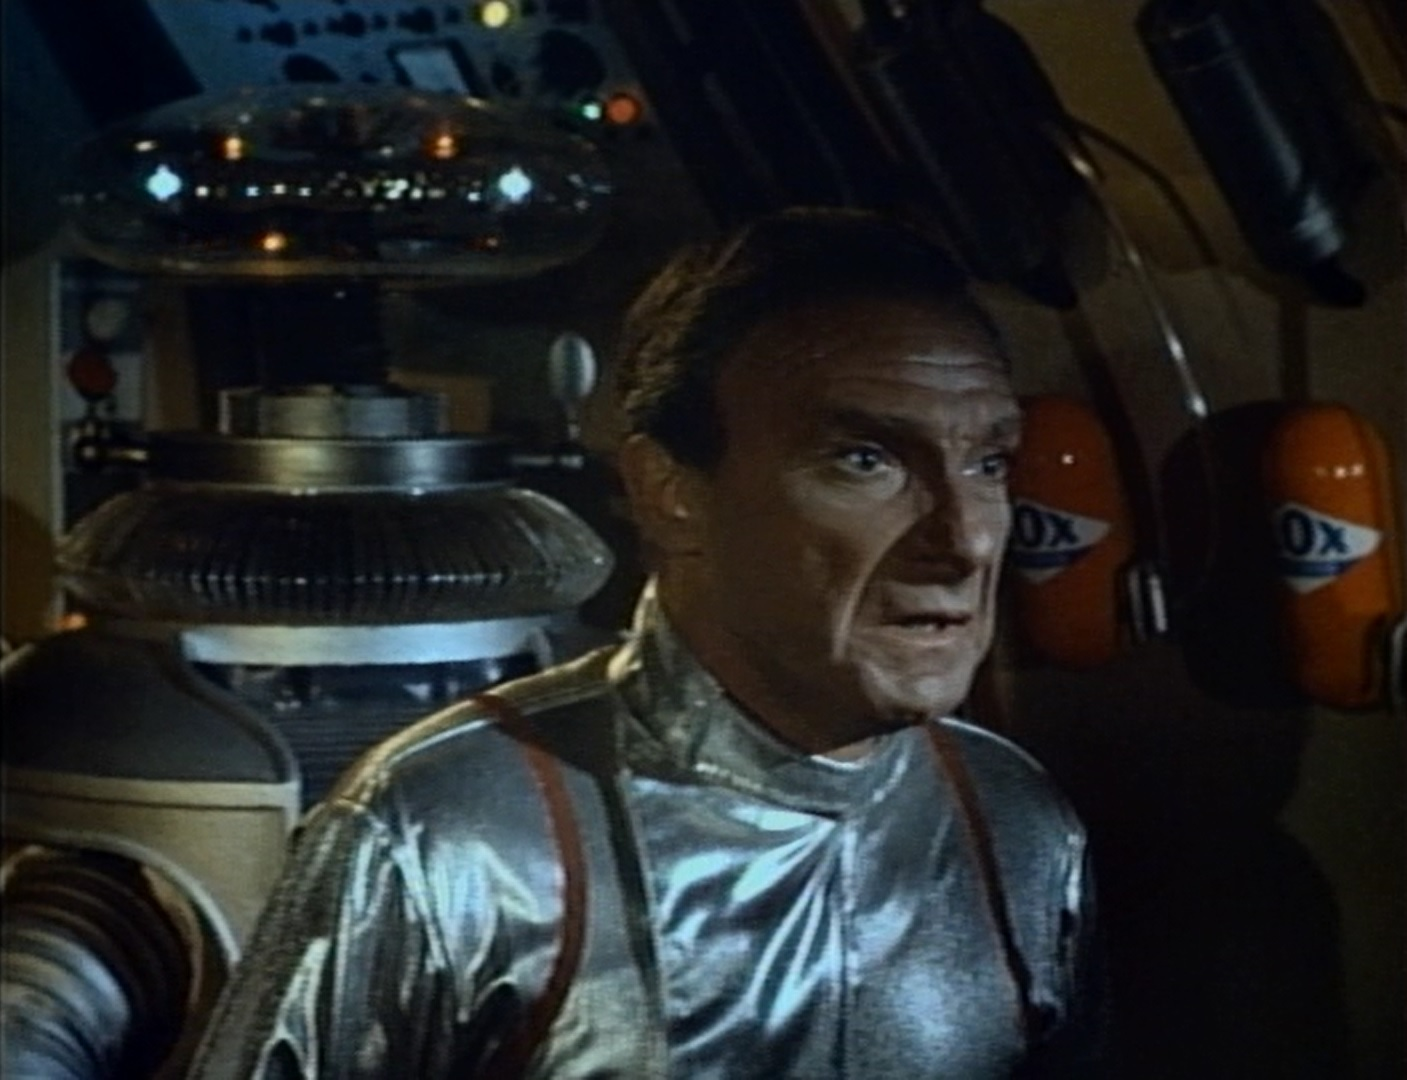 Lost In Space Episode 62 Kidnapped In Space Midnite Reviews